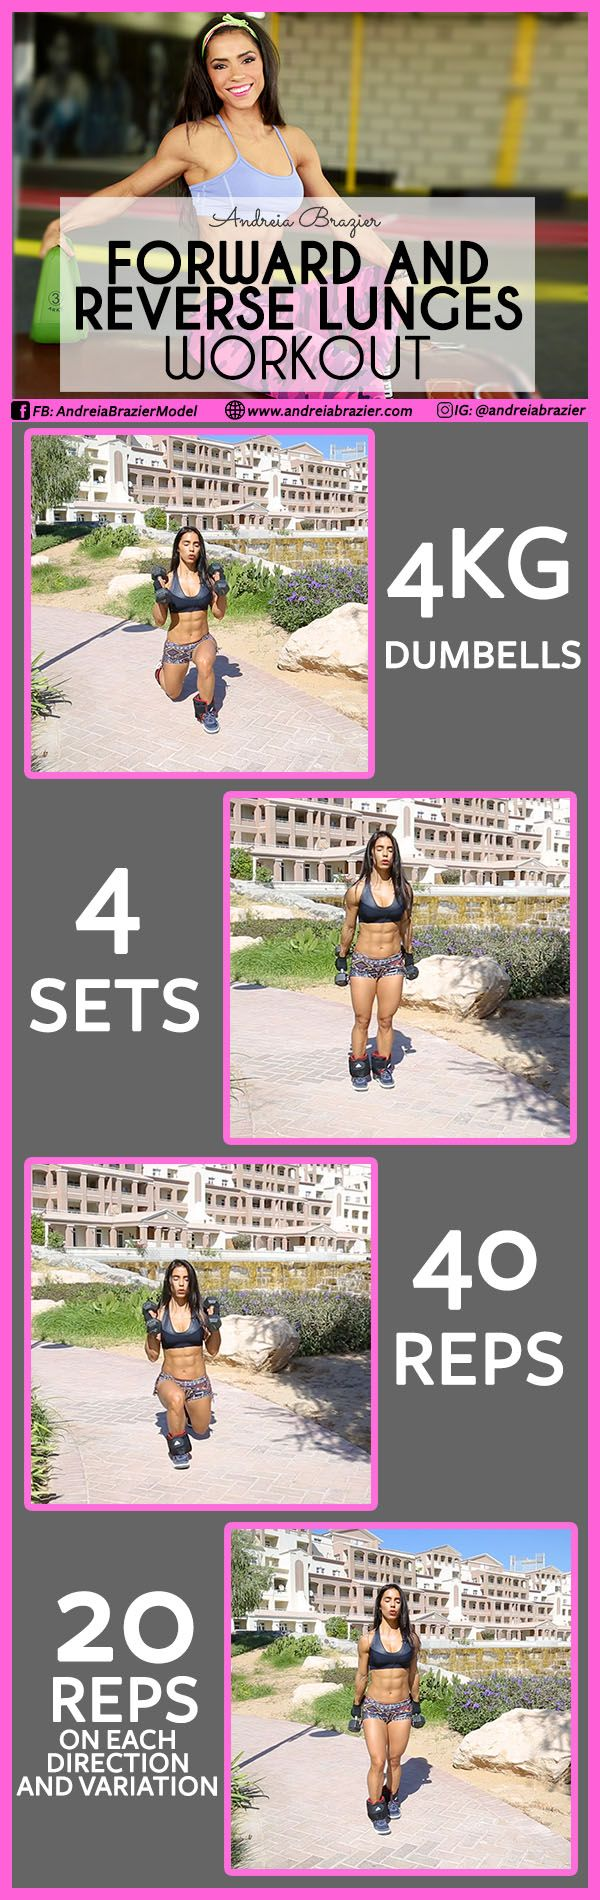 All that you need to do this workout is a Pair of Dumbbells & Ankle Weights. I am using 4 kg Dumbbells on each arm and 2 kg Ankle Weights On each leg. If you are a beginner you can start with 2 kg Dumbbells and NO Ankle Weights for the first 3 weeks then continue to step up your game. Good luck! Watch the full demonstration here: https://www.instagram.com/p/BdNfoyCnUiL/?taken-by=andreiabrazier